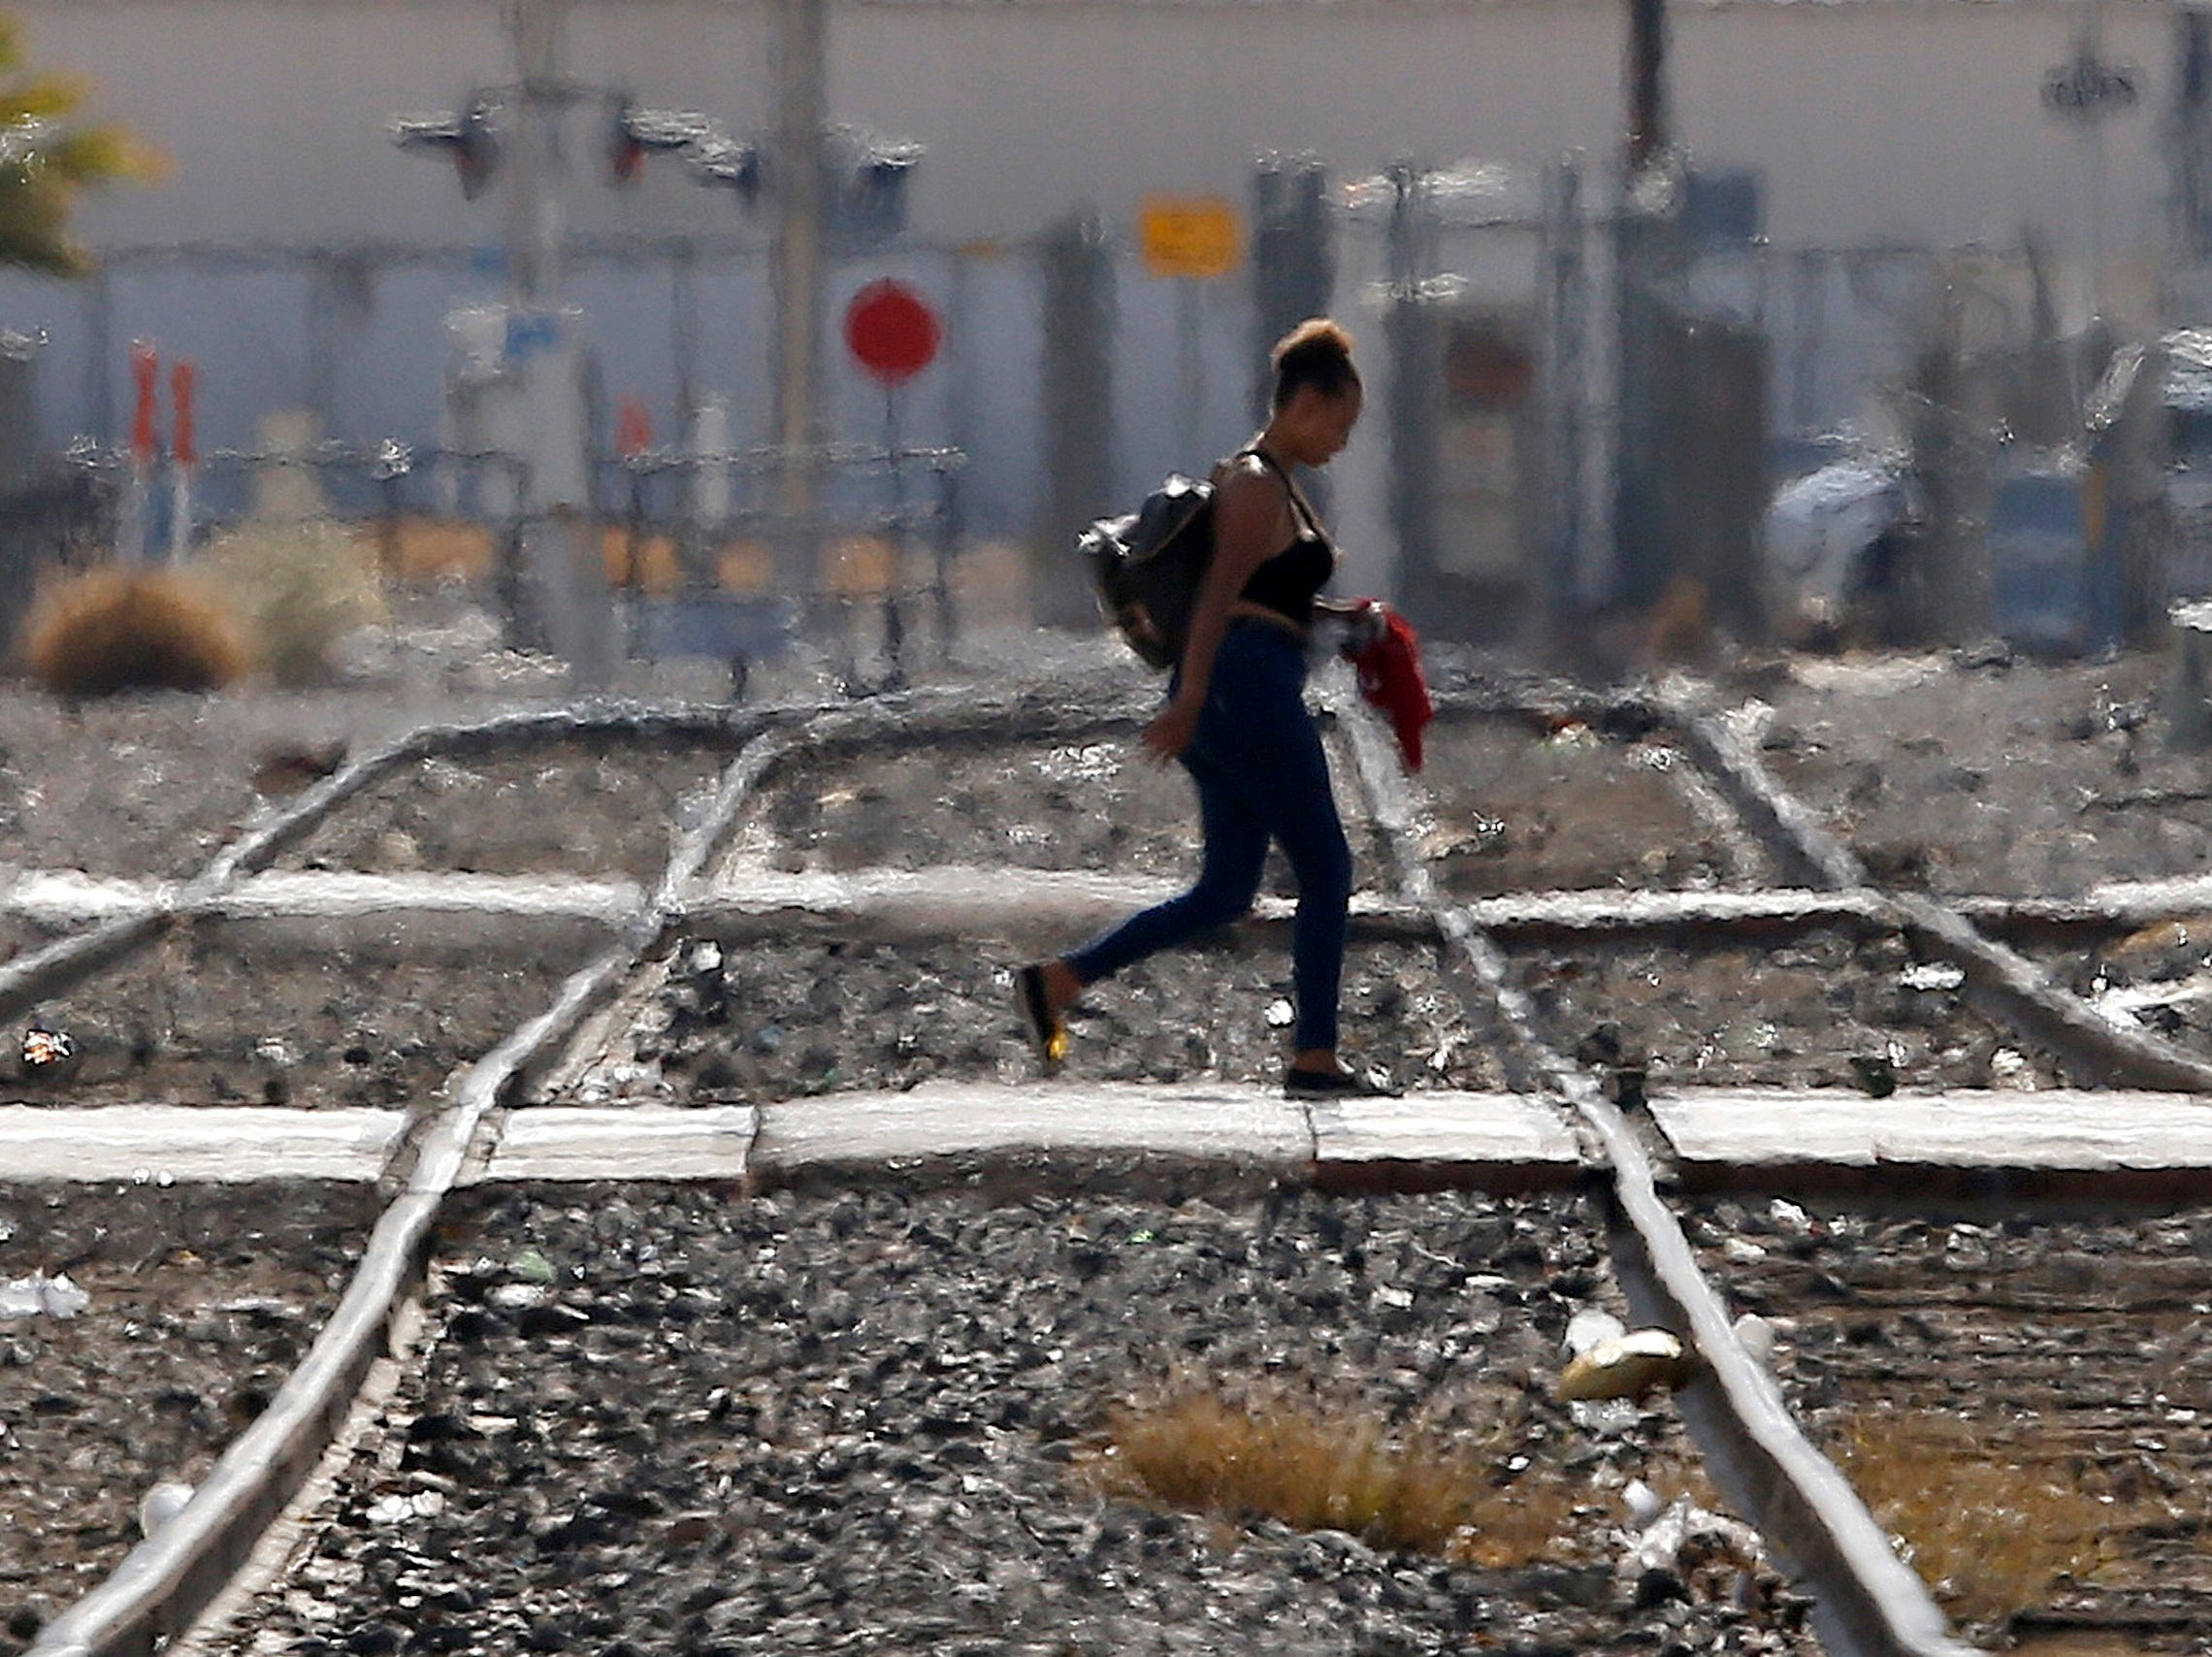 July 5, 2018: While the heat waves rise up from the ground, a woman crosses the railroad tracks as temperatures climb past 112-degrees in Phoenix.